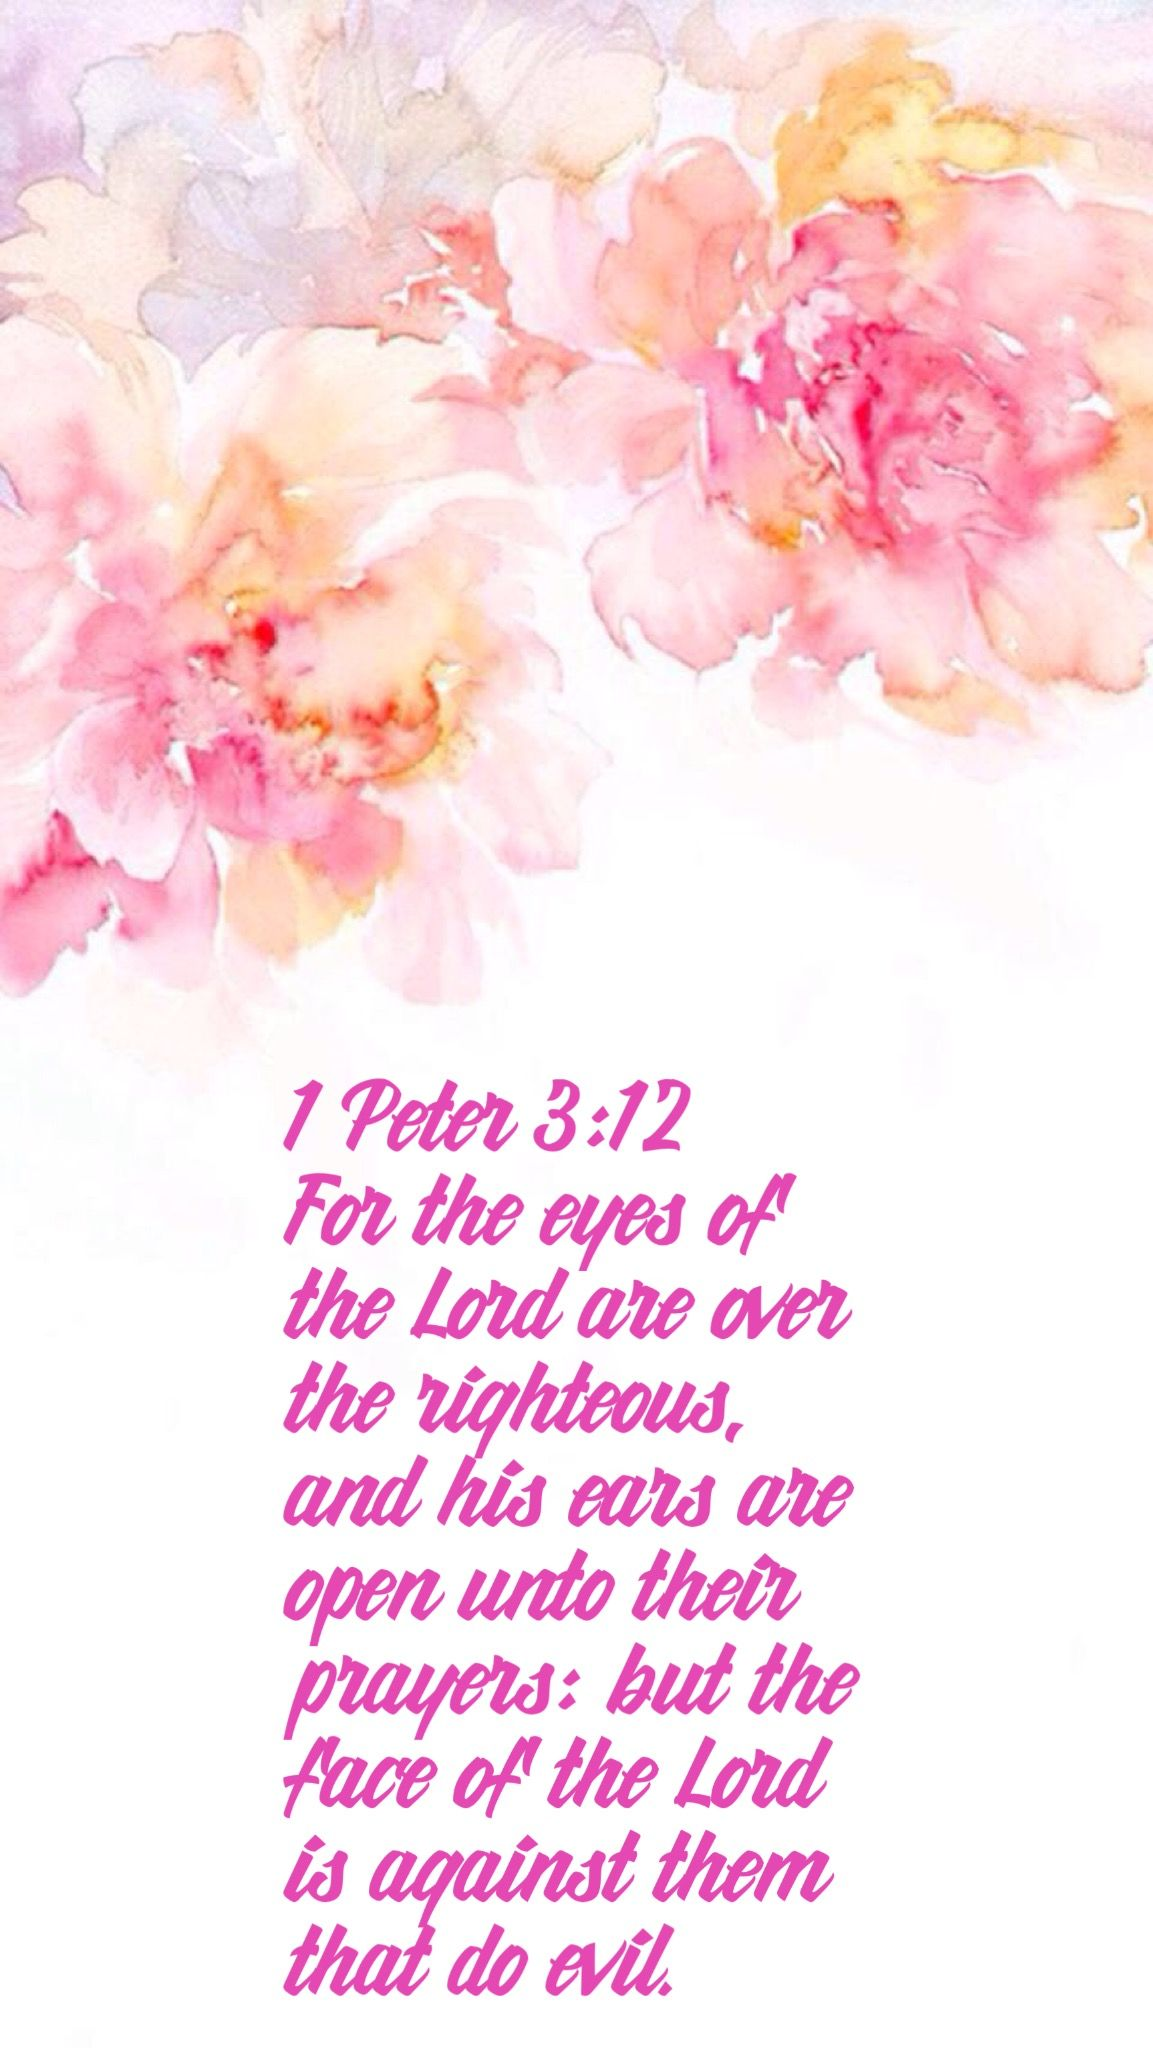 1 Peter 3:12 - For the eyes of the Lord are over the righteous, and ...